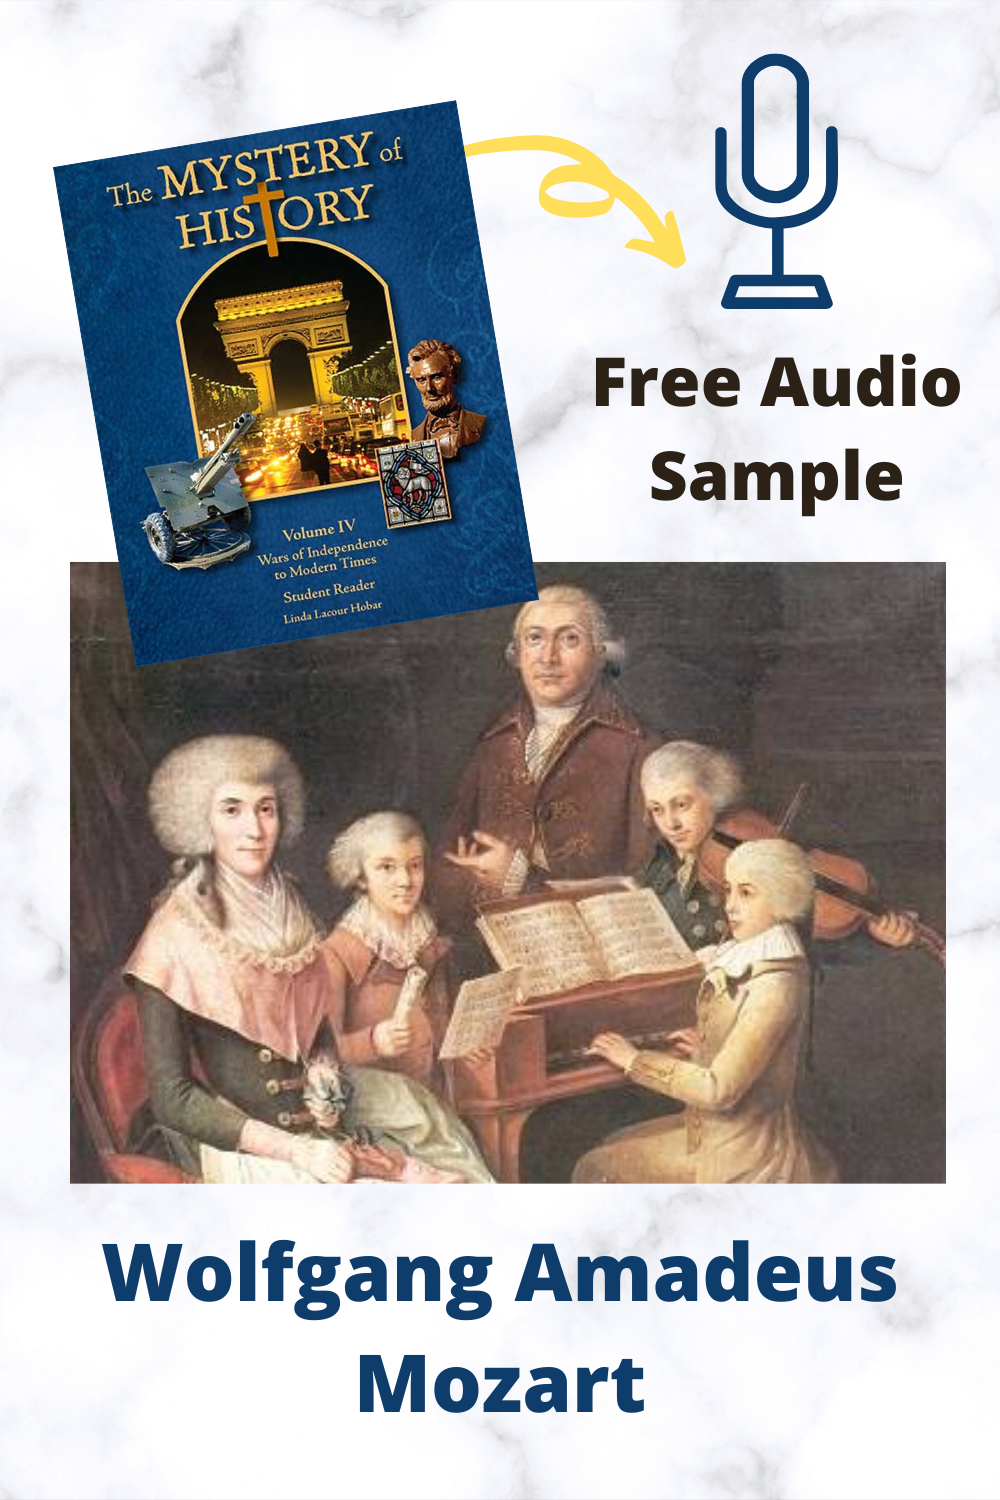 Download a free audio sample of Wolfgang Amadeus Mozart from The Mystery of History Vol. IV